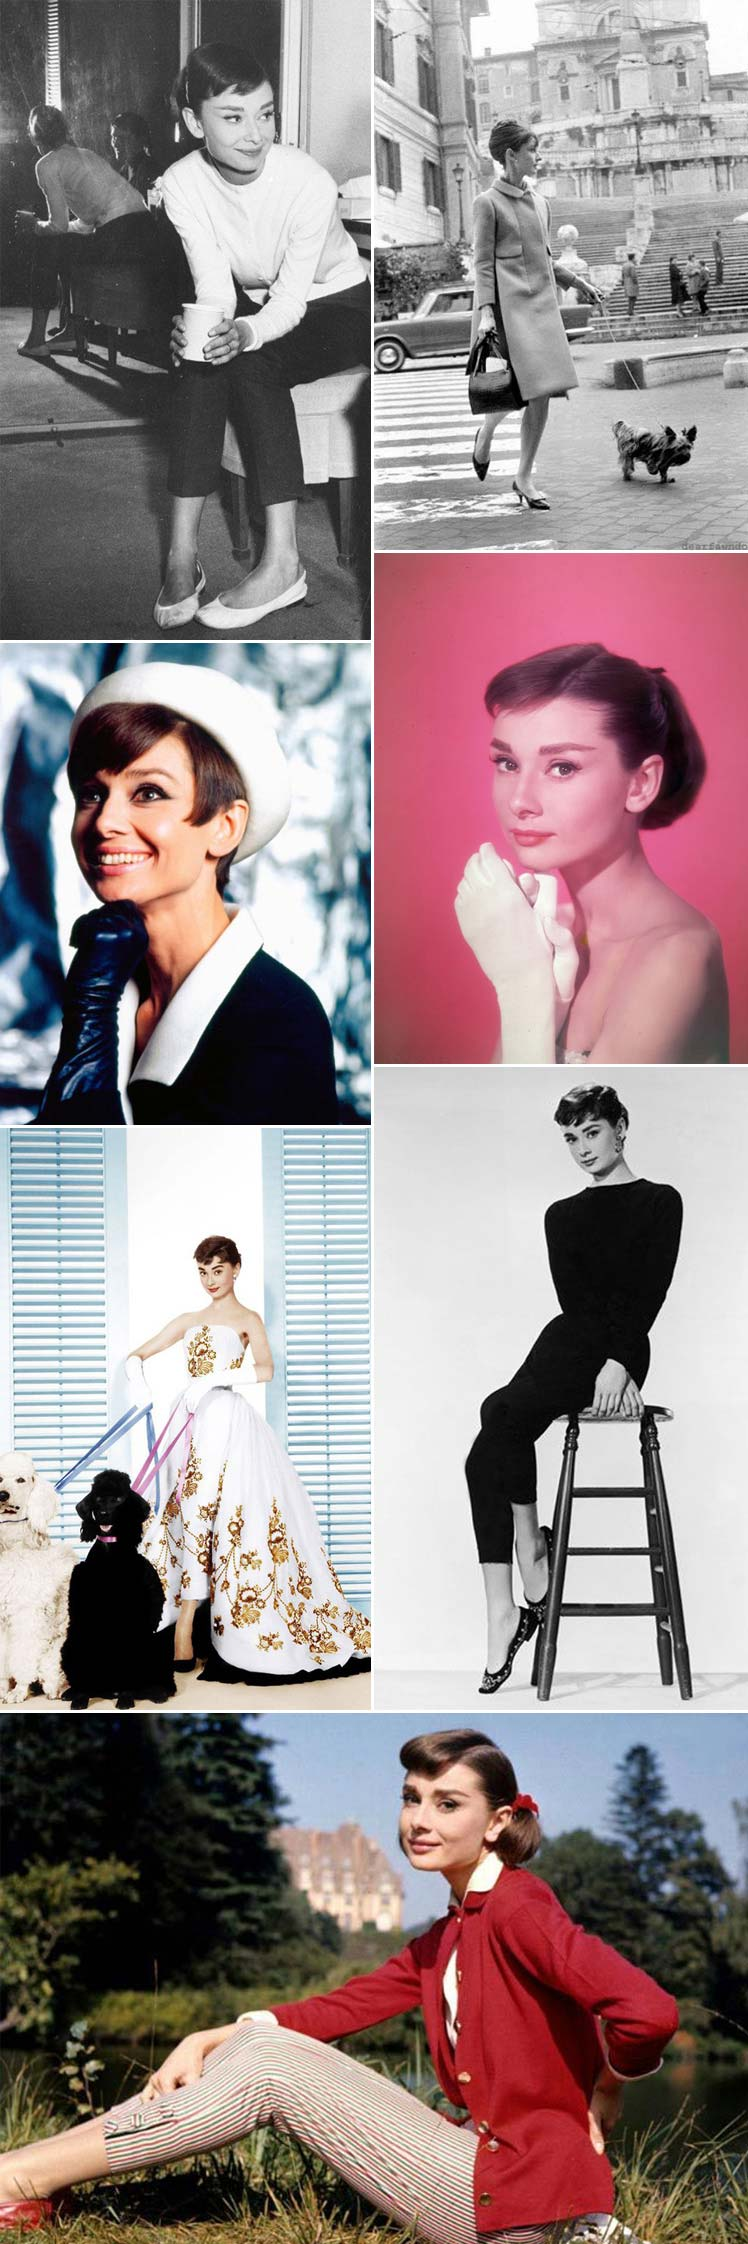 Audrey Hepburn's timeless style